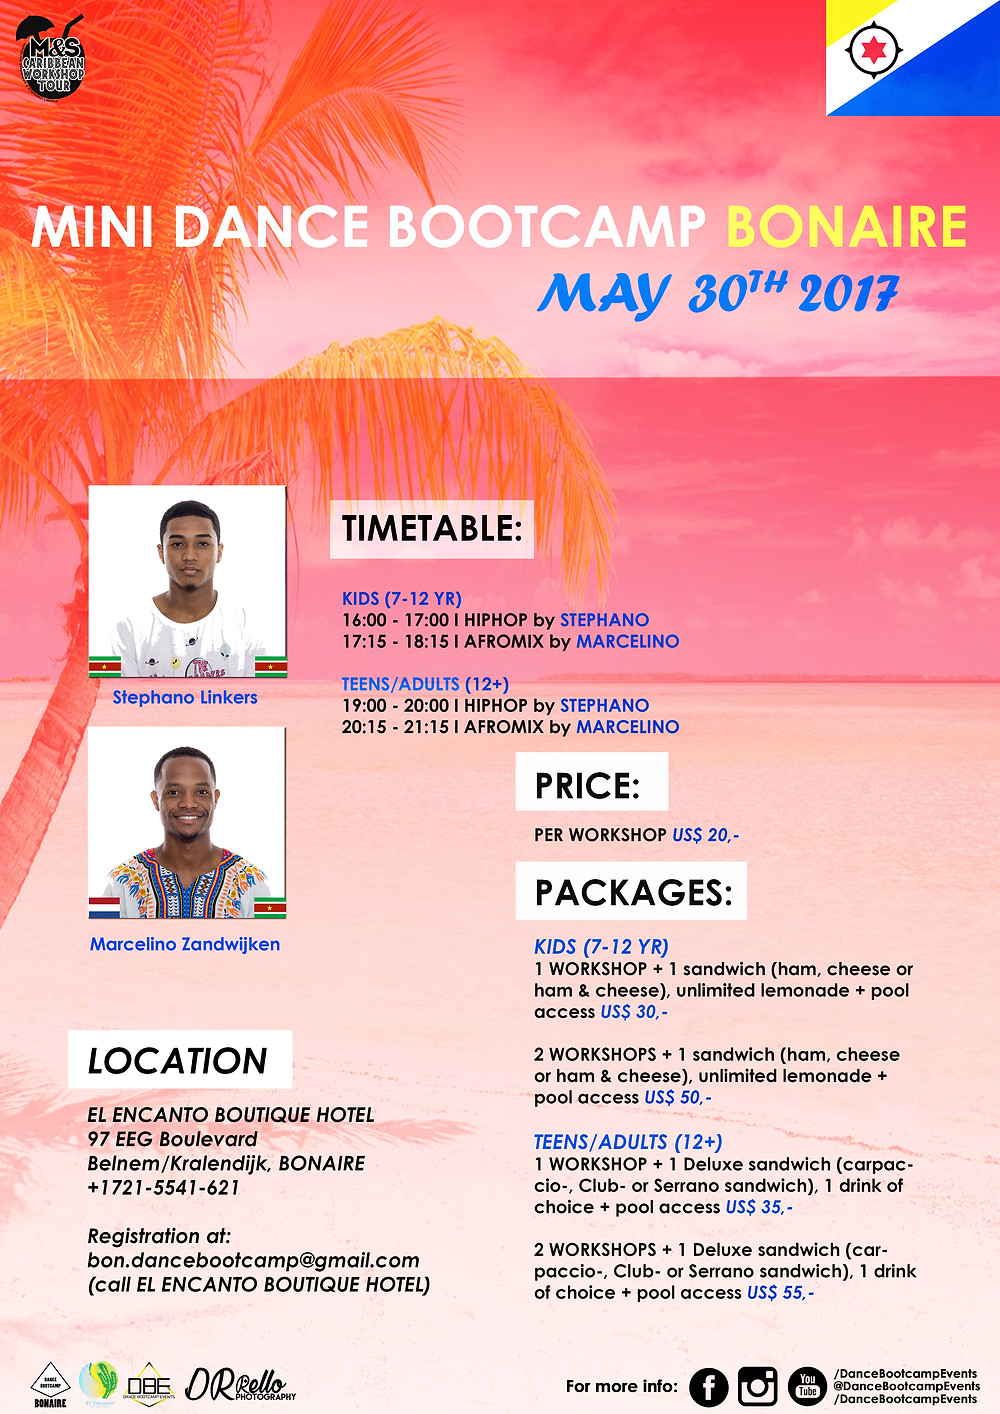 XpBonaire, IslandLife, Bonaire, Information, Events, Entertainment , Dance Bootcamp Events, El Encanto Boutique Hotel Bonaire